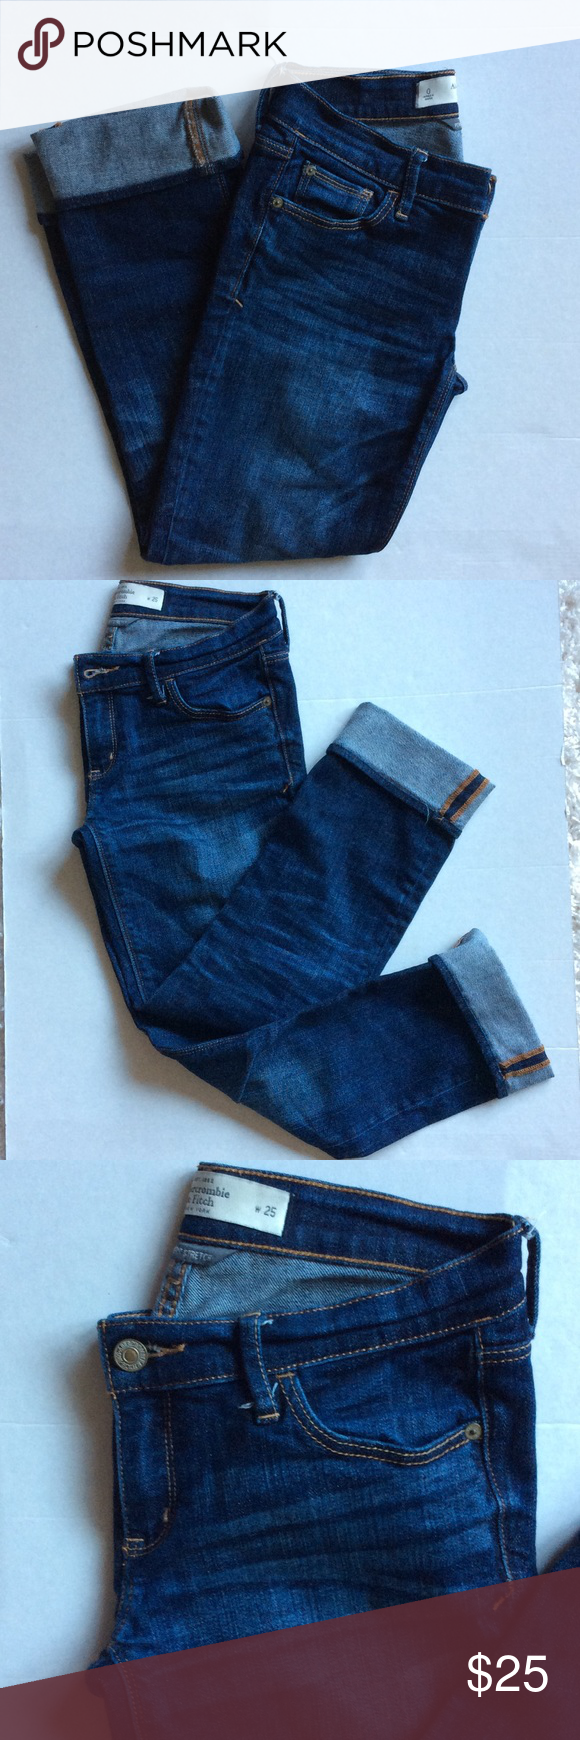 Abercrombie & Fitch Size 0 Cropped Jeans 🌻 Great condition! Gently worn! Fading in the Jean is the style of the Jean not a flaw. A spot in the back of the left pant leg shows a little bit more fading than the other side but it's the way they came. No dye on any Jean is completely perfect if you pay close attention but besides that they are perfect and like new! Great for Fall! 🍁🍂🍁🍂 Abercrombie & Fitch Jeans Ankle & Cropped